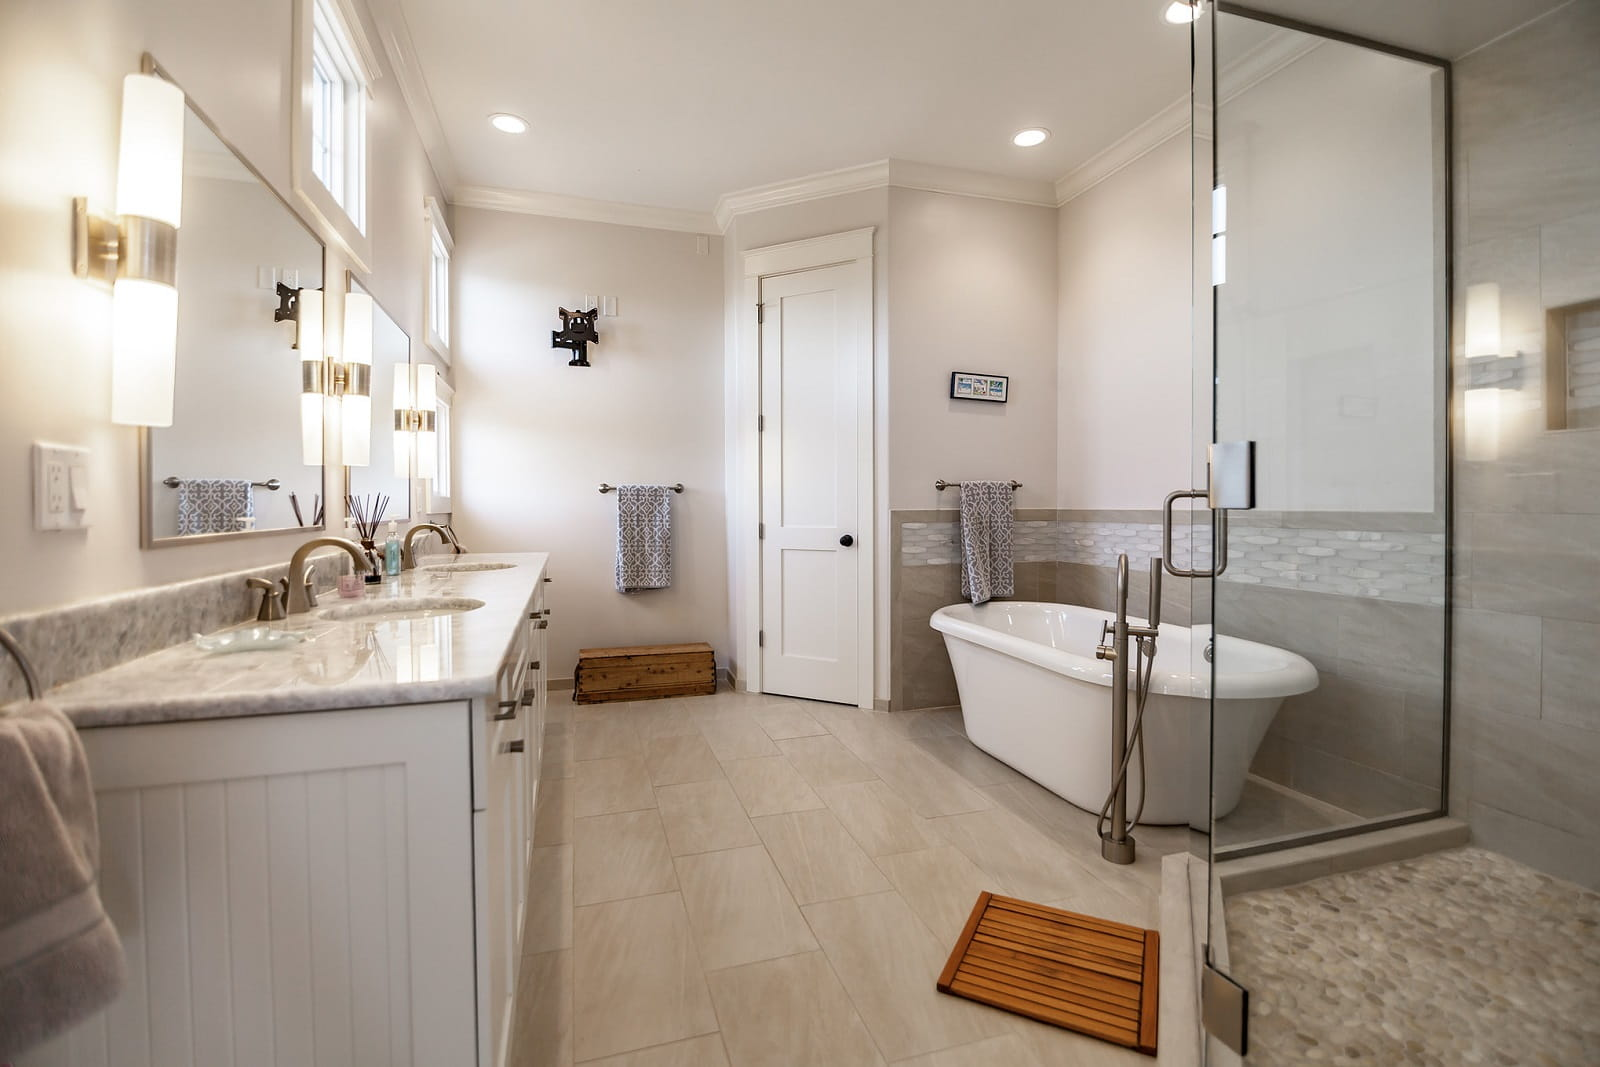 Real Estate Photography in St. Petersburg - FL - USA - Bathroom View